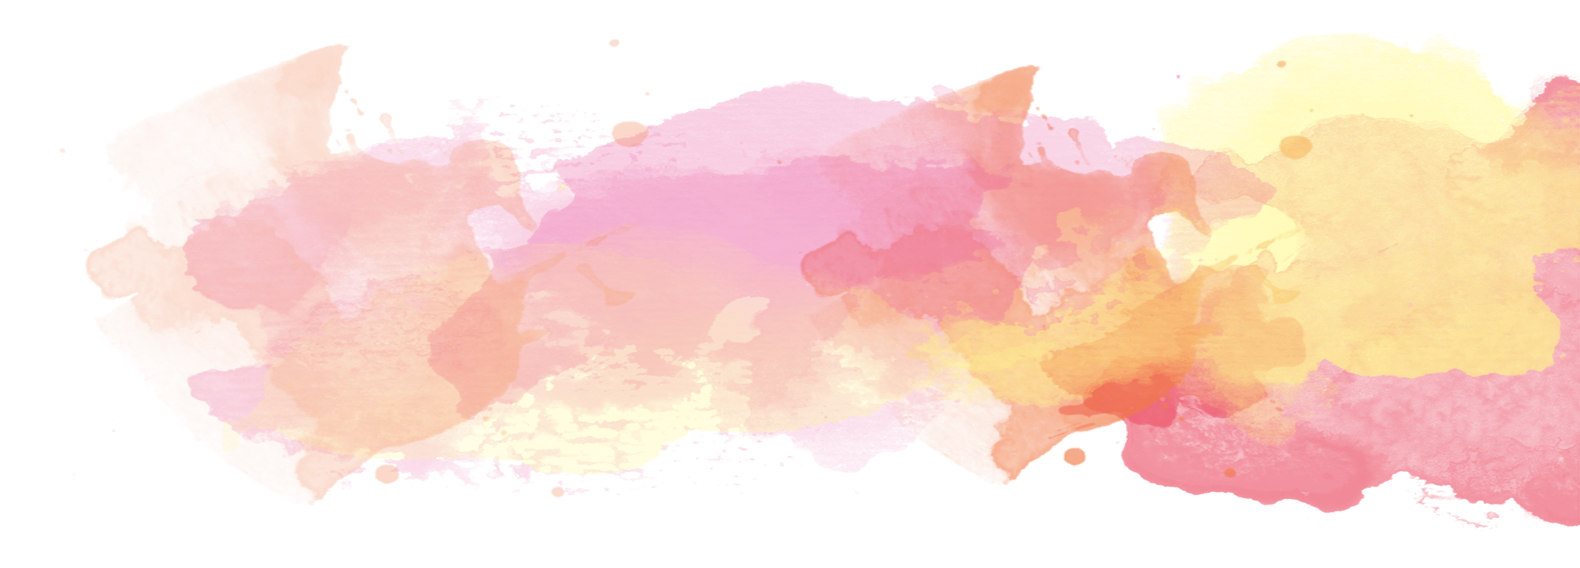 Water color splatter png. Paint watercolor pink orange